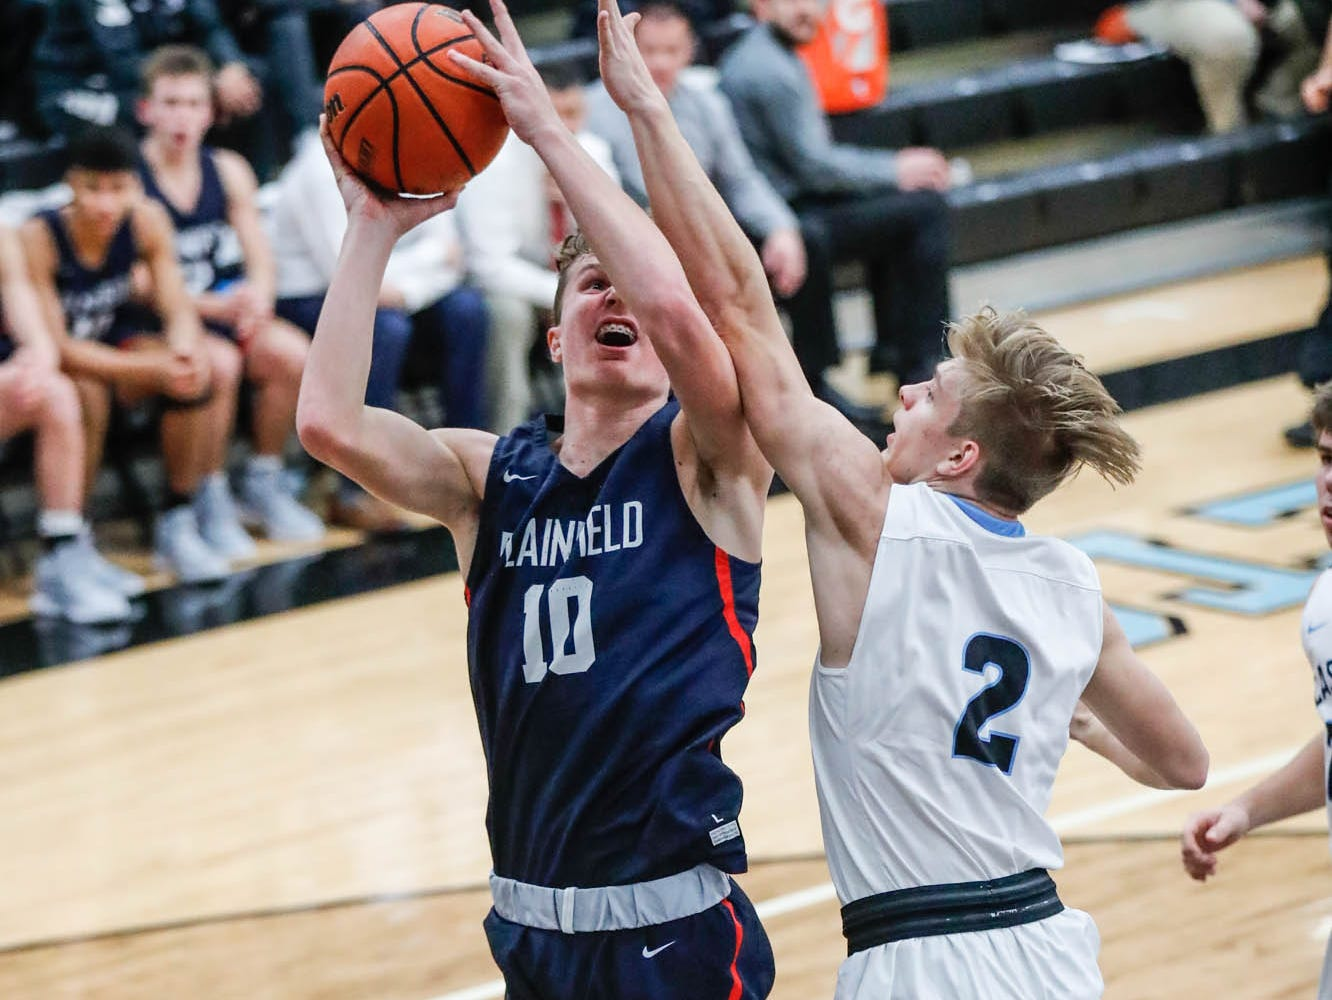 Plainfield High School's forward Cade East (10), attempts a shot around Cascade High School's A.J. Sanders (2), during a 2019 Hendricks County Basketball Tournament game between Plainfield High School and Cascade High School, held at Cascade on Wednesday, Jan. 2, 2019.